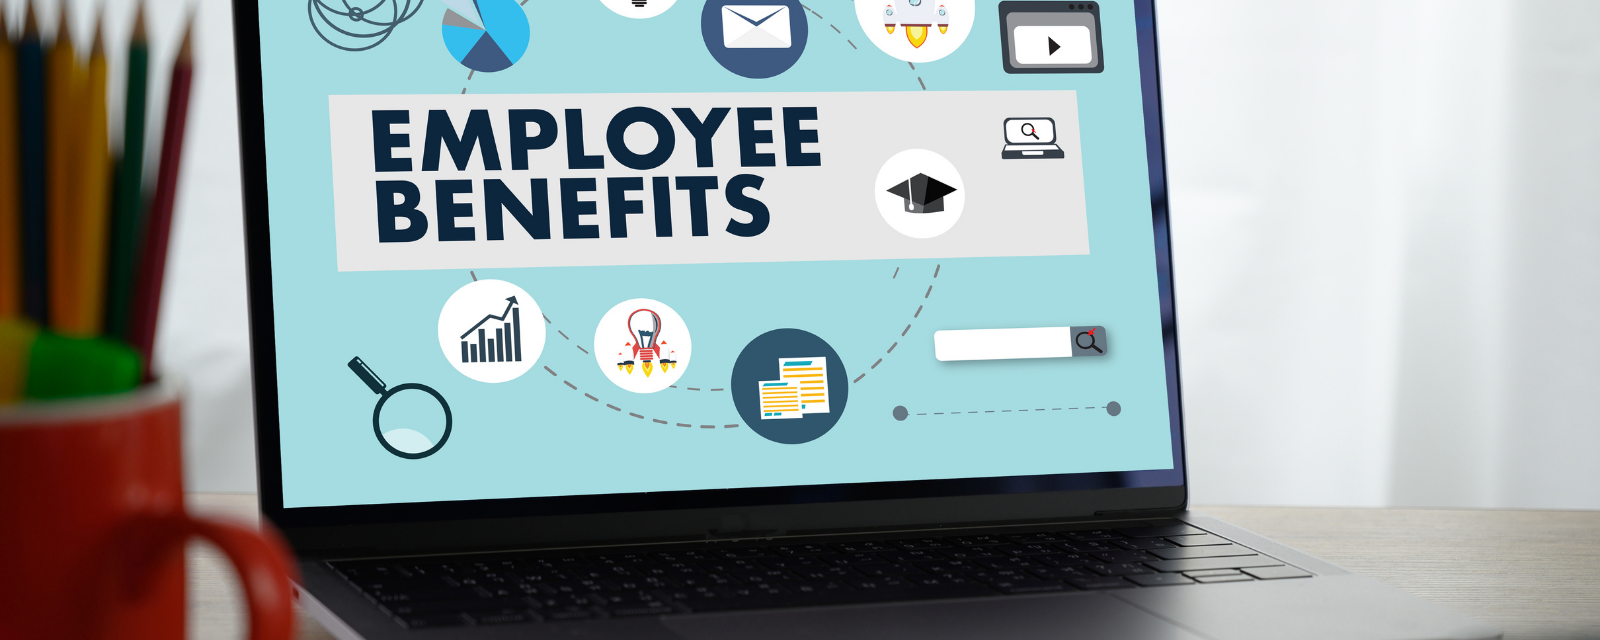 laptop open with employee benefits on the screen